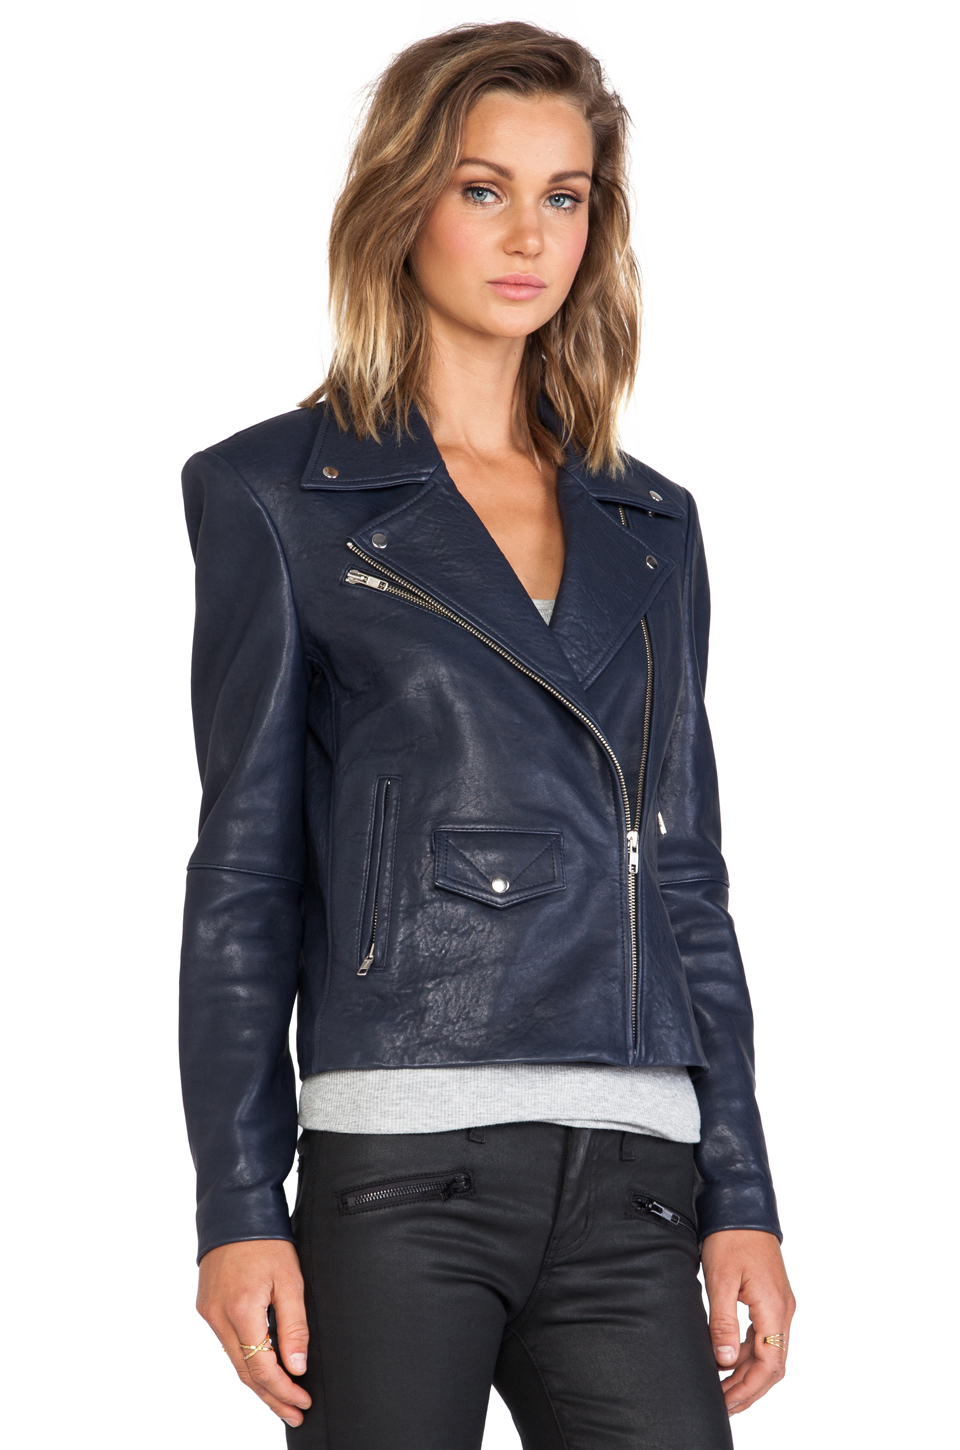 Veda lazer classic jacket in navy from revolveclothing.com